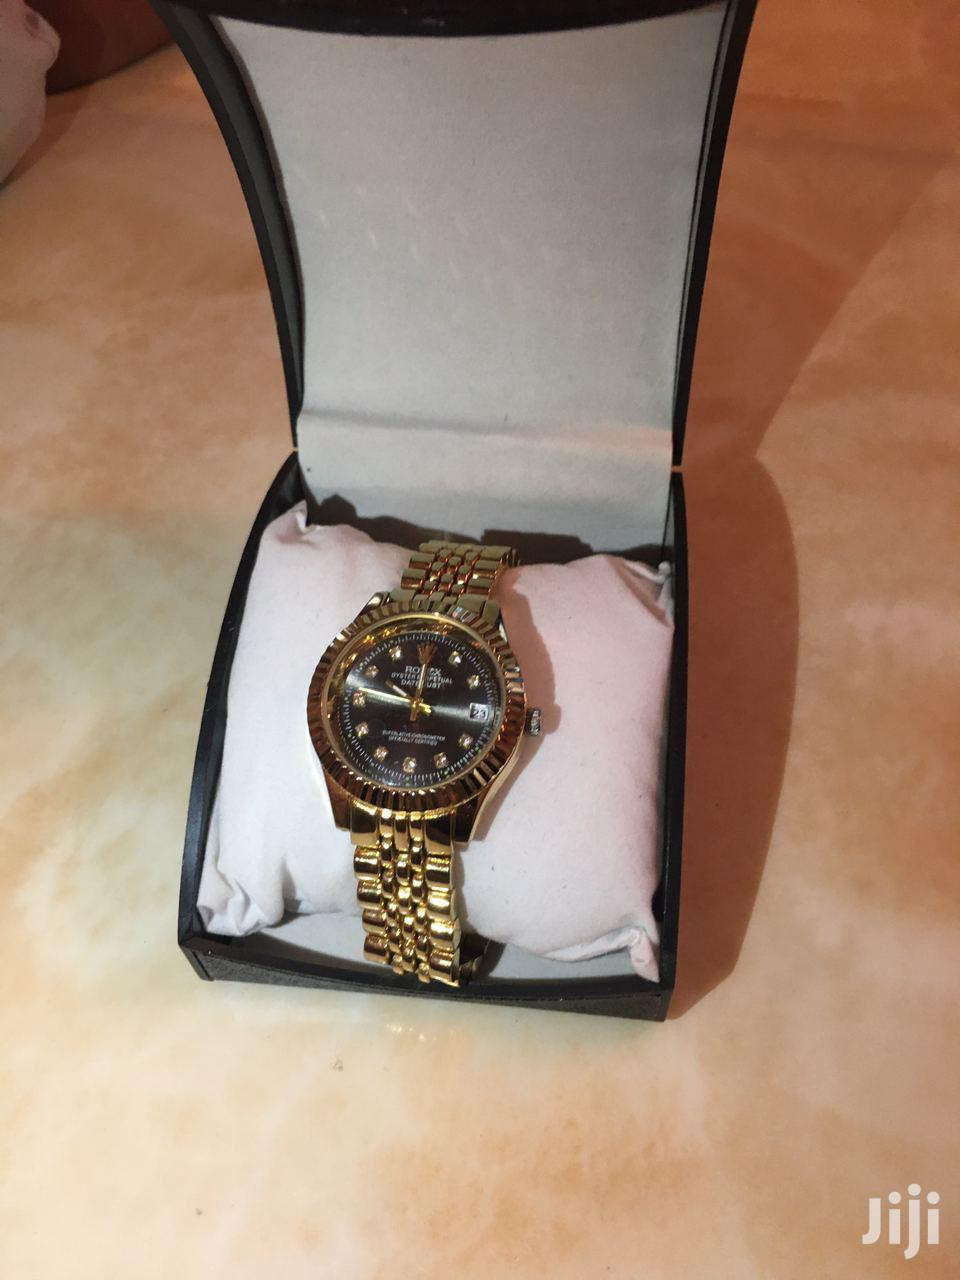 Rolex Hand Watch | Watches for sale in Arada, Addis Ababa, Ethiopia